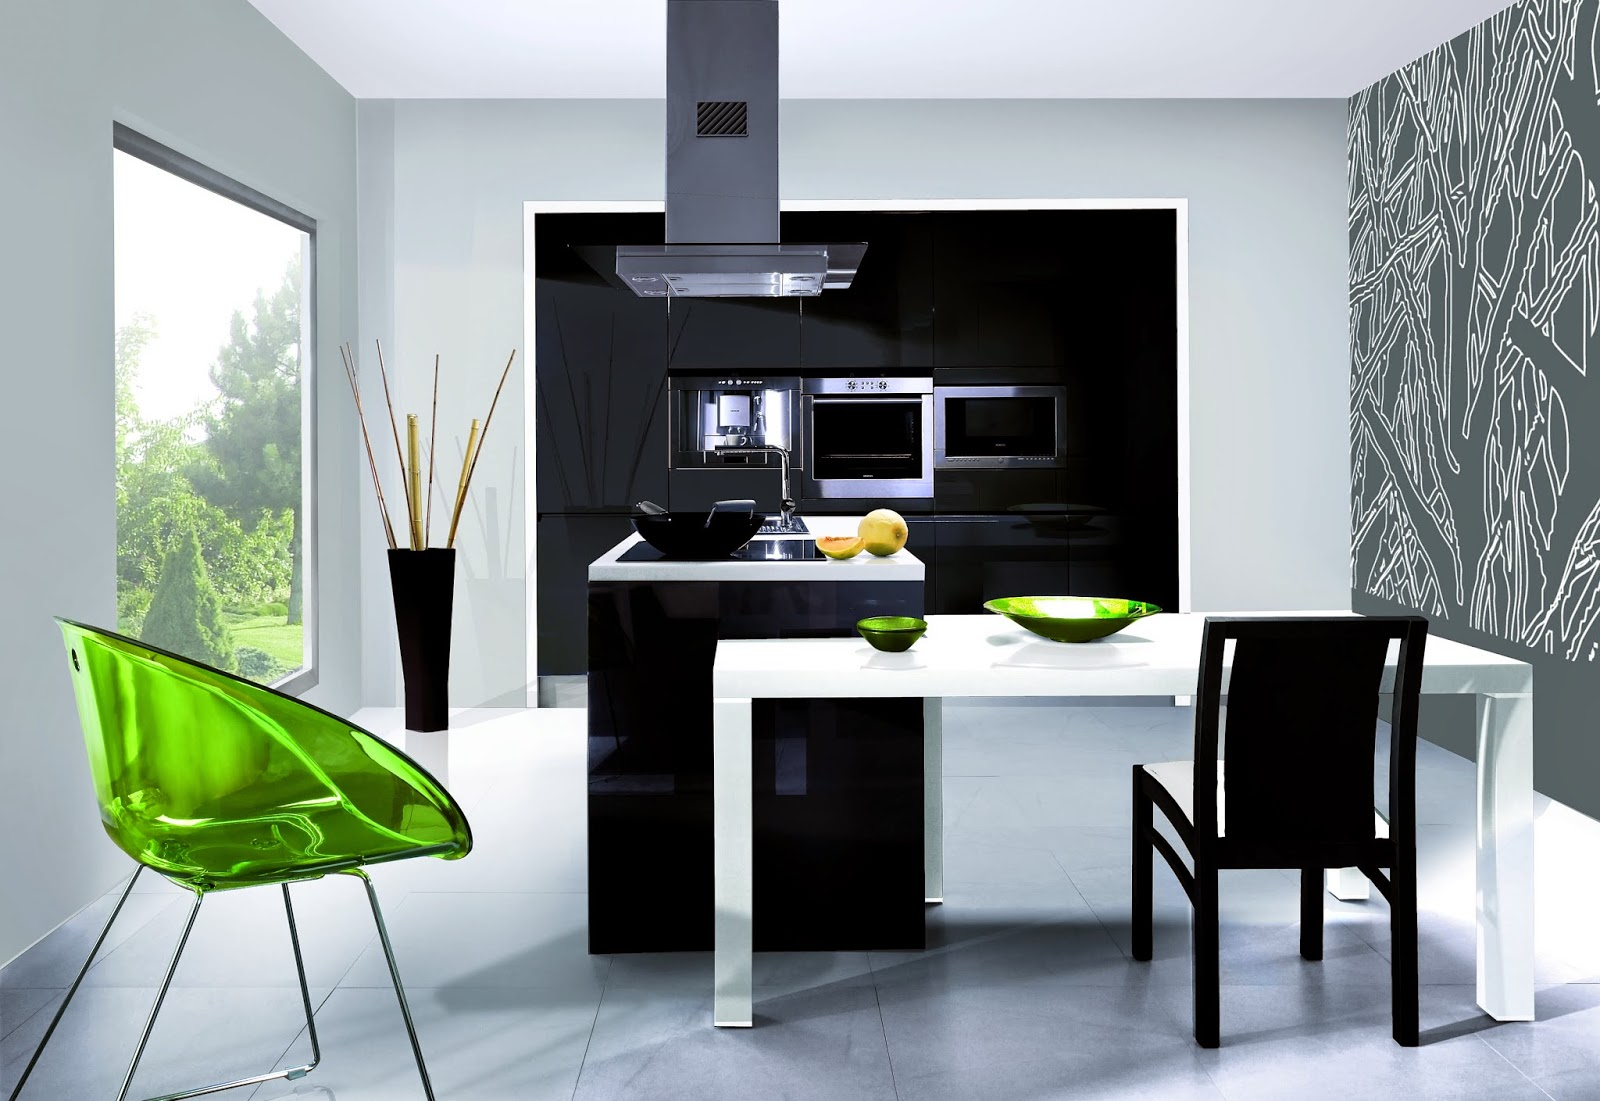 15 elegant minimalist kitchen designs with modern kitchen for Minimalist design inspiration